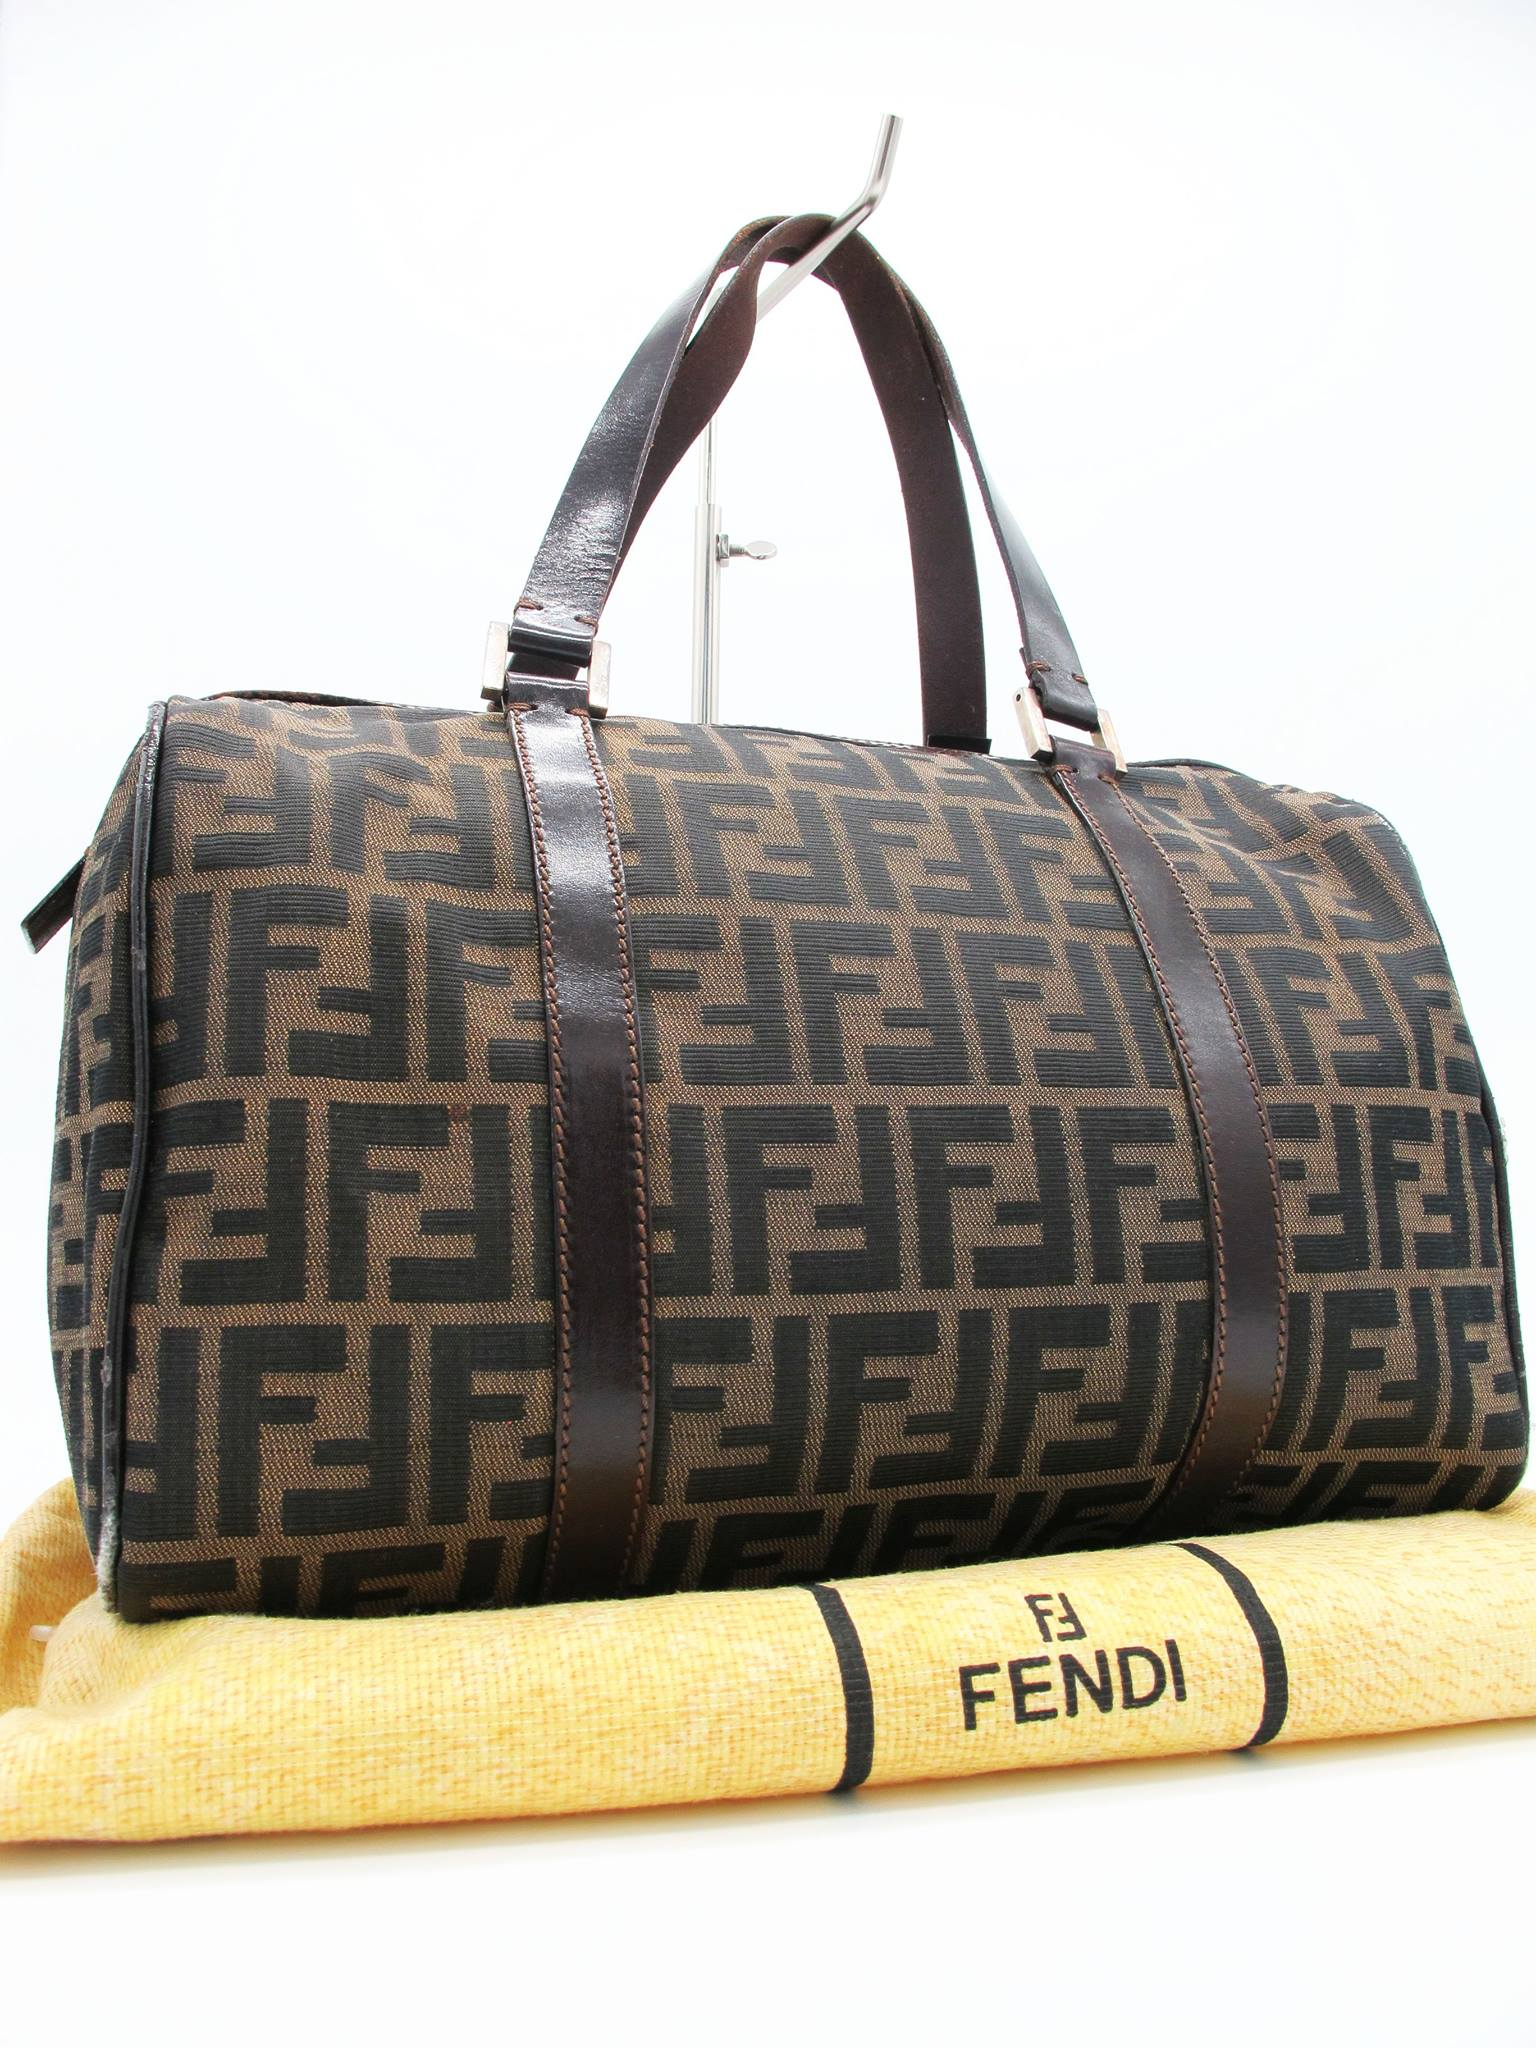 Fendi Monogram Boston Bag